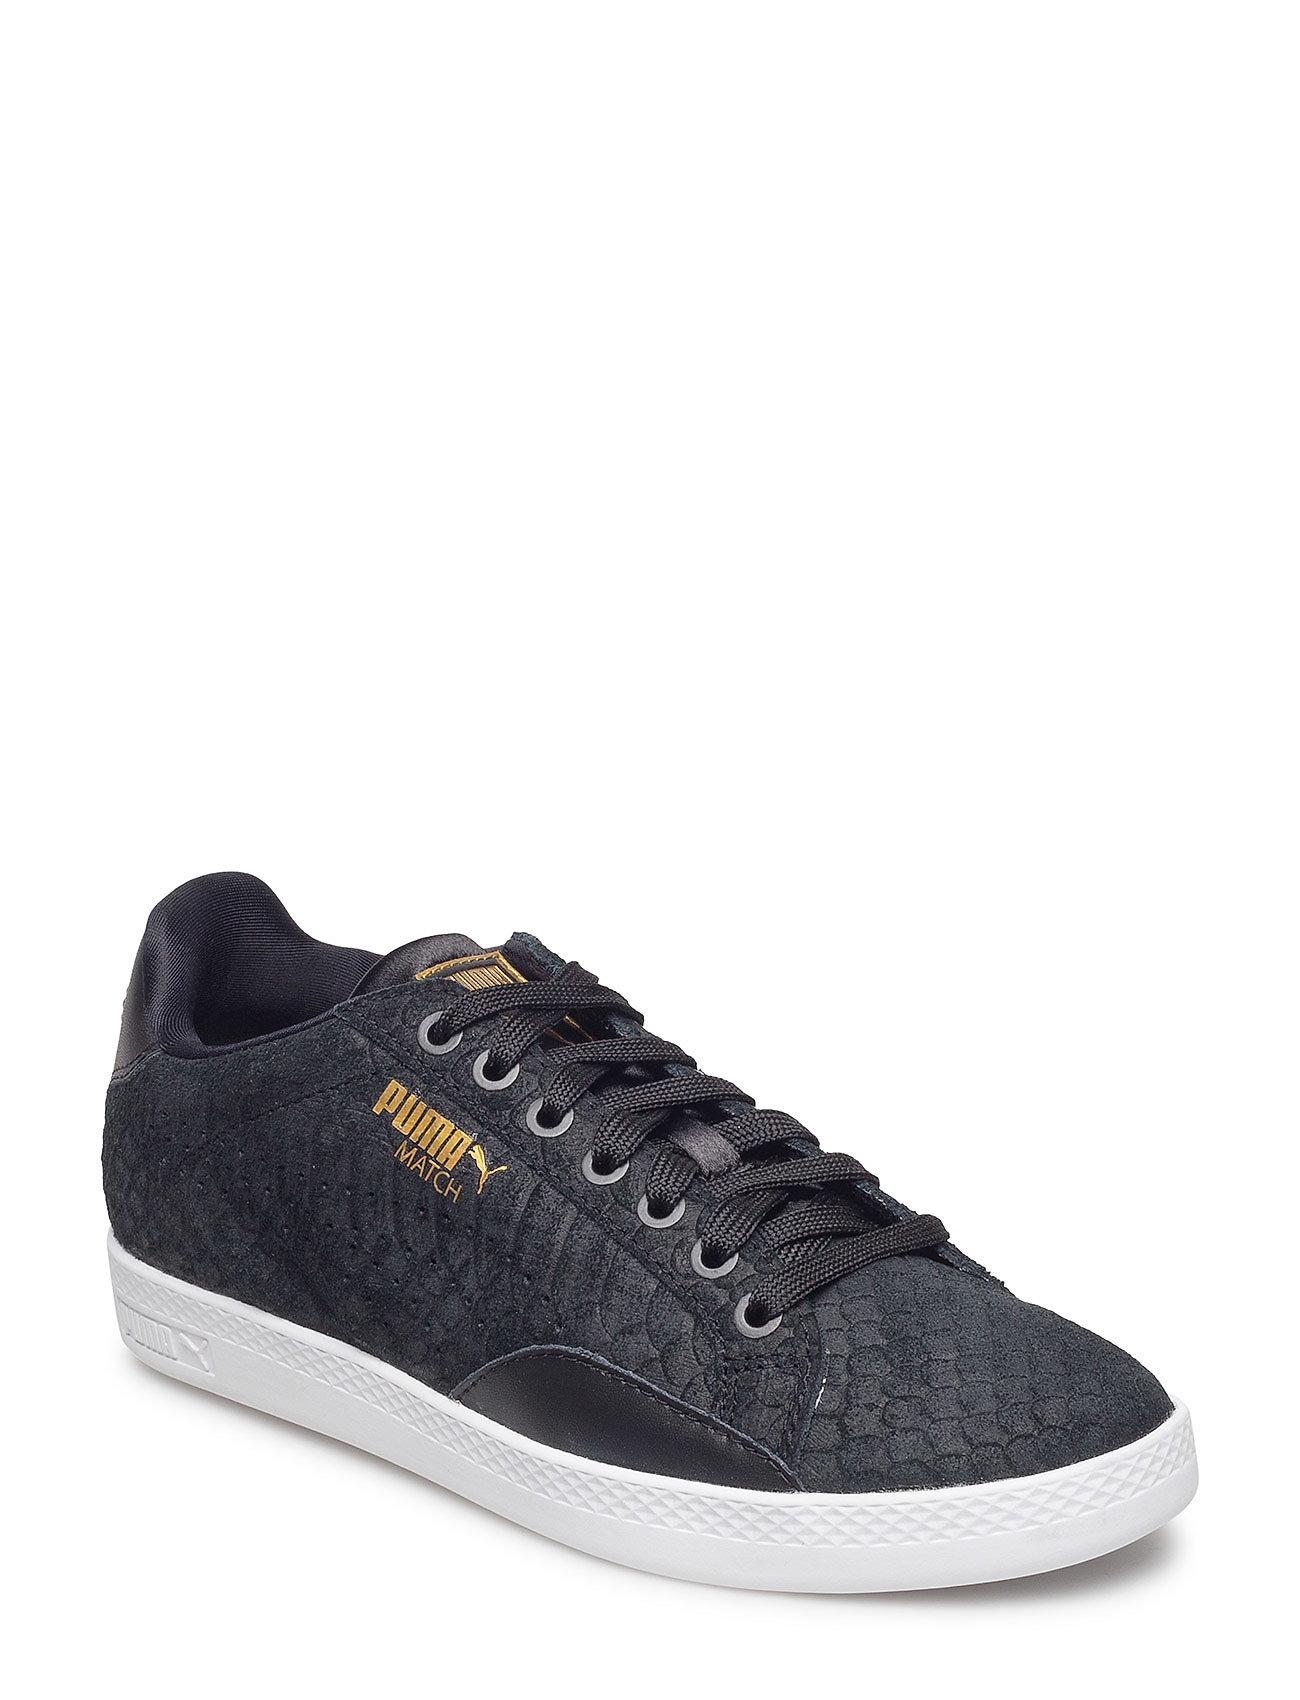 9abf9ce0c51 Match Exotic Skin Wn'S Low-top Sneakers Sort PUMA